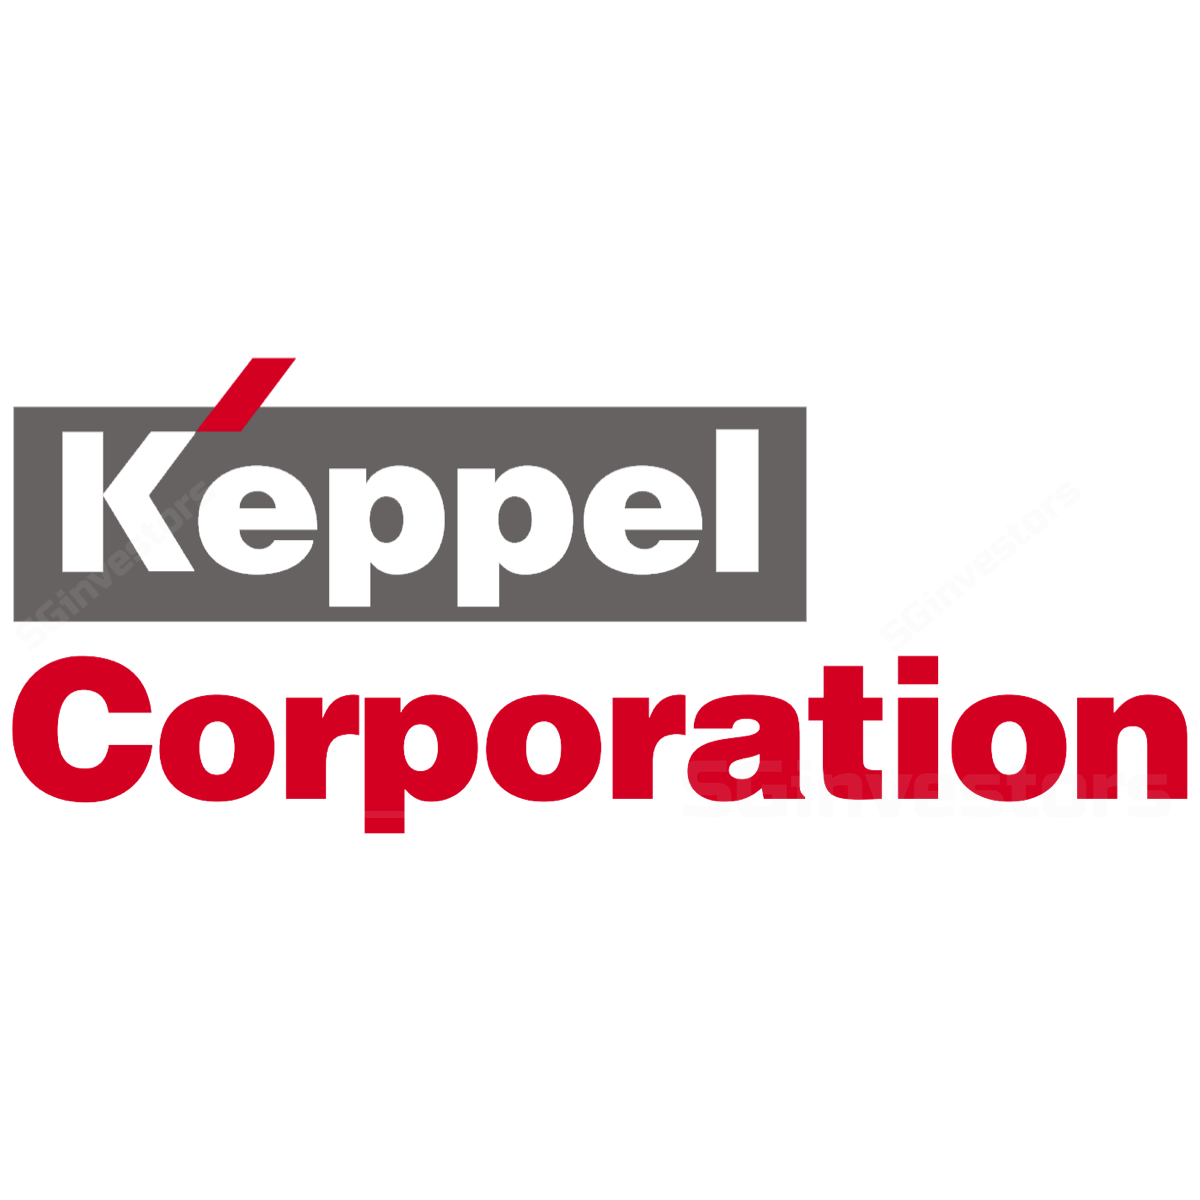 Keppel Corp - RHB Invest 2017-05-30: Contracts Won Total SGD263m YTD